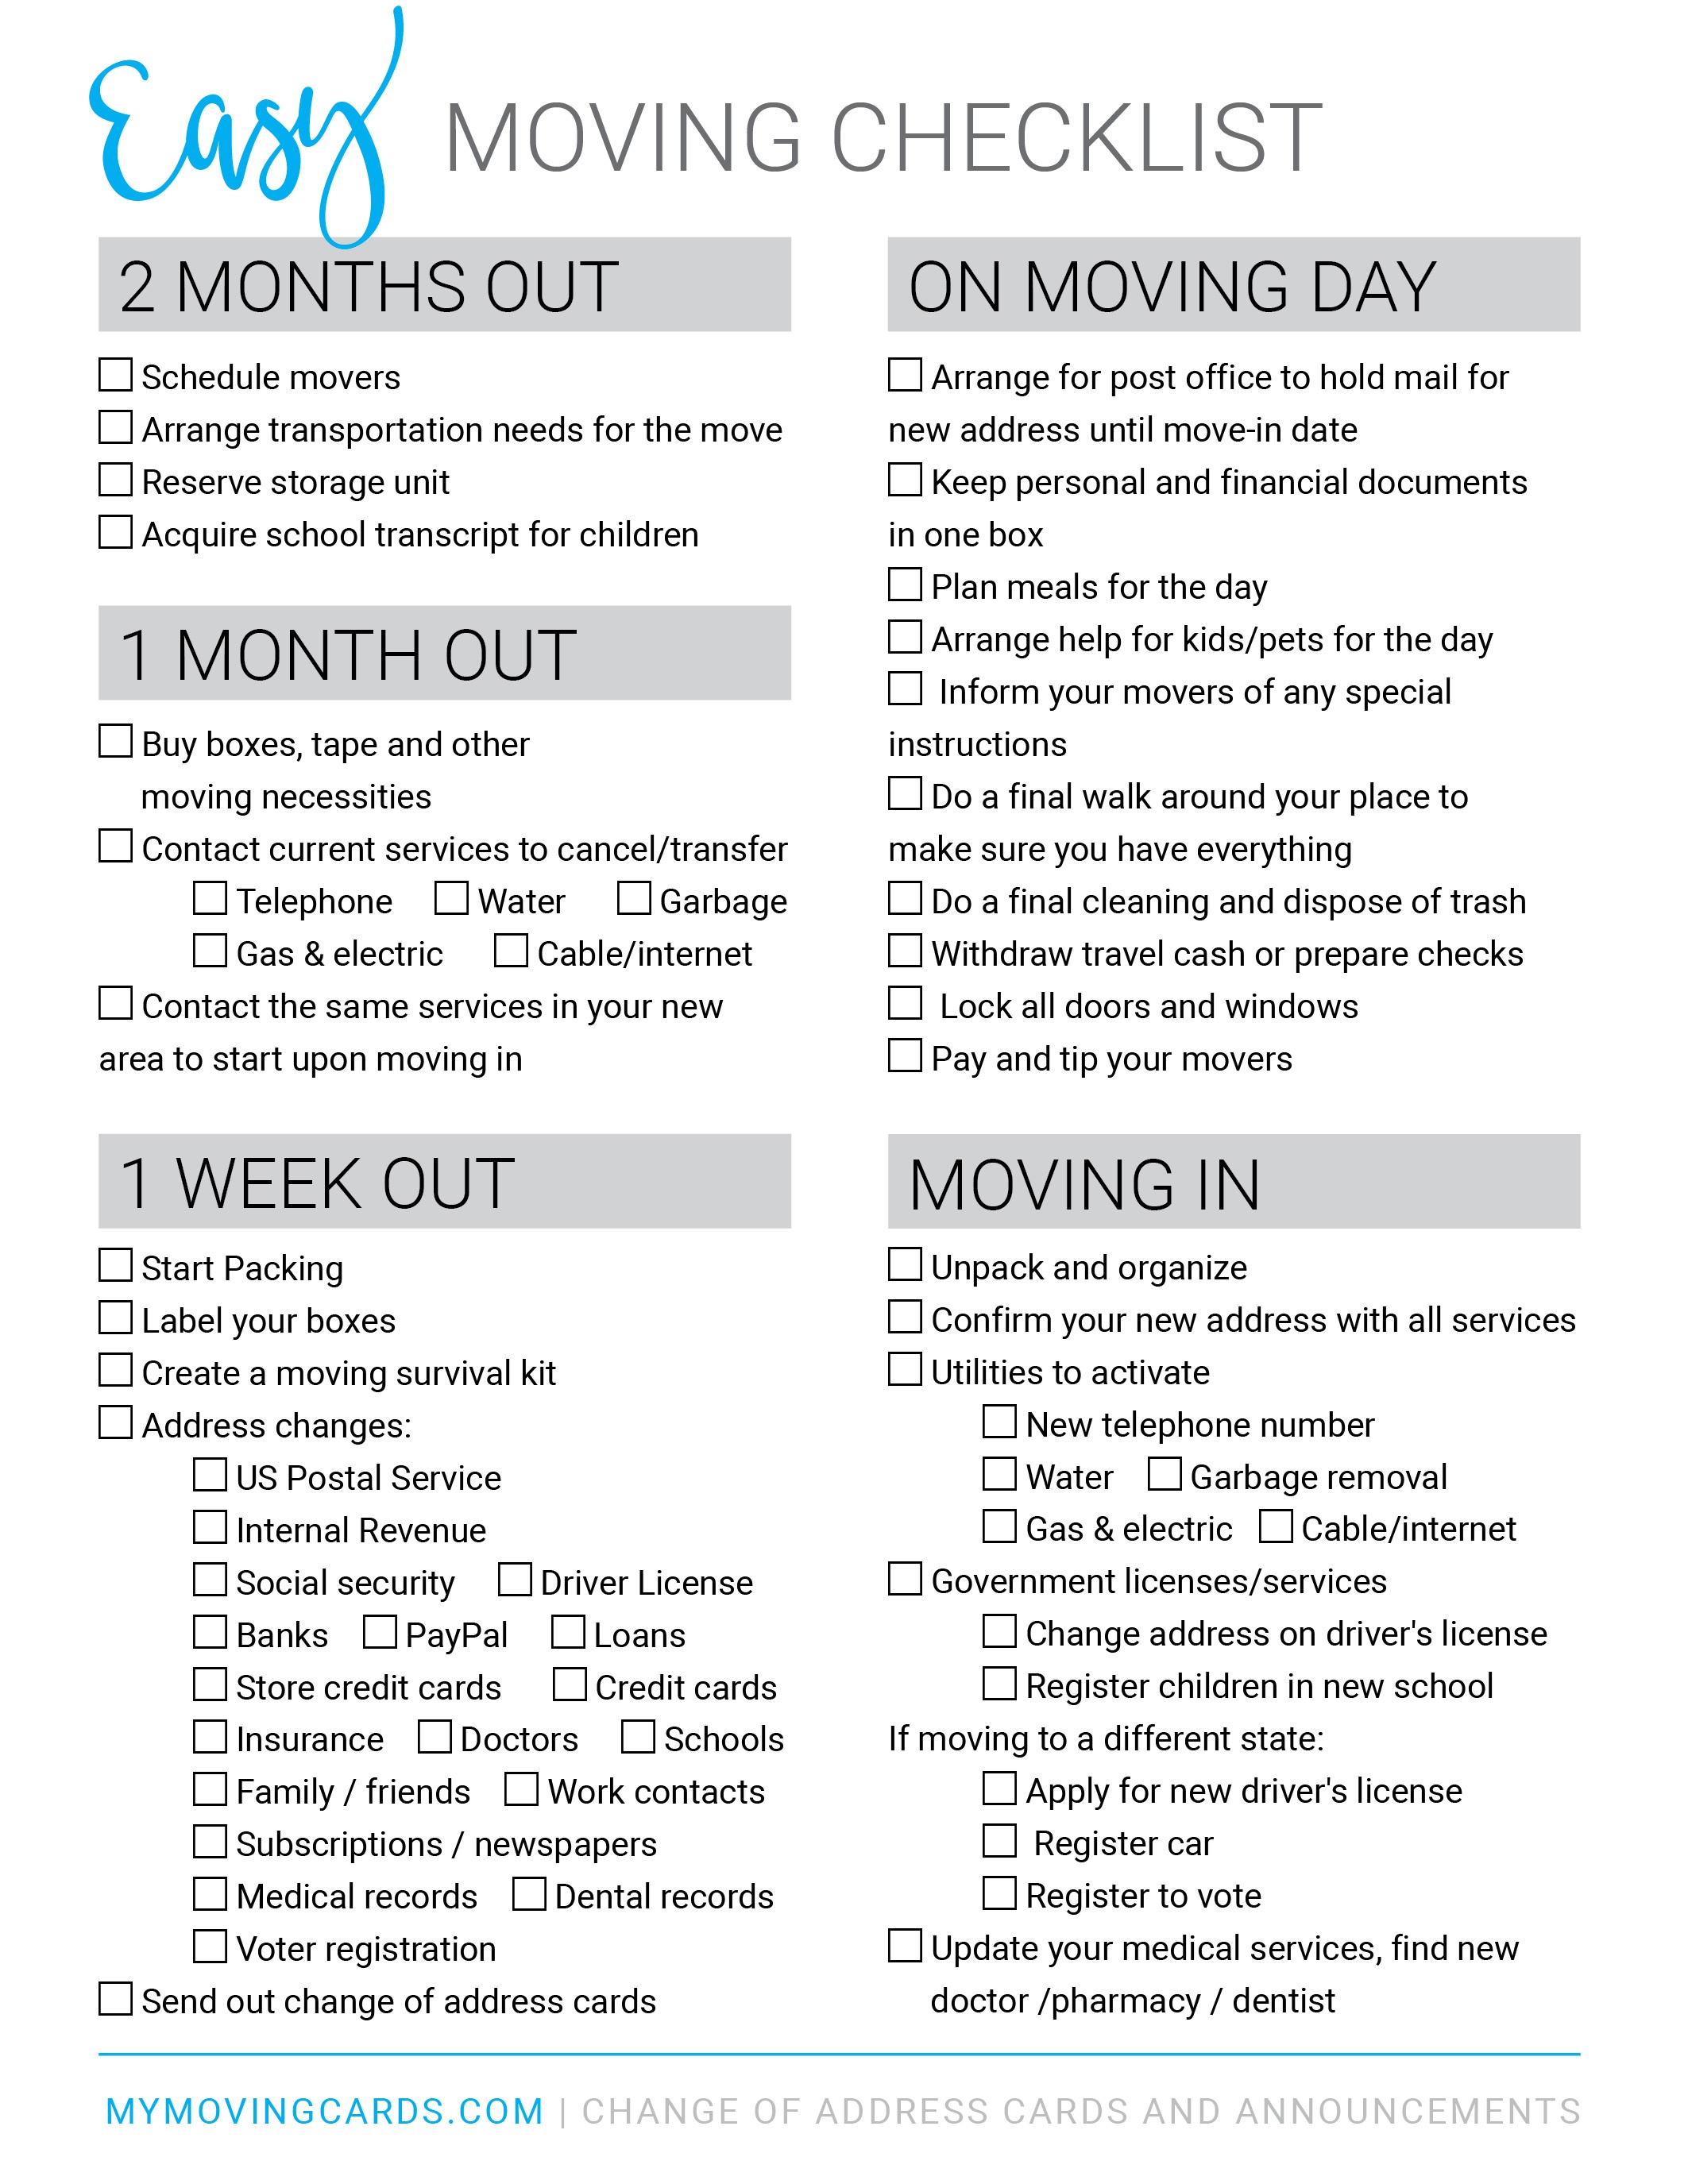 Free Printable Moving Checklist | Personalized Moving Cards - Free Printable Change Of Address Cards